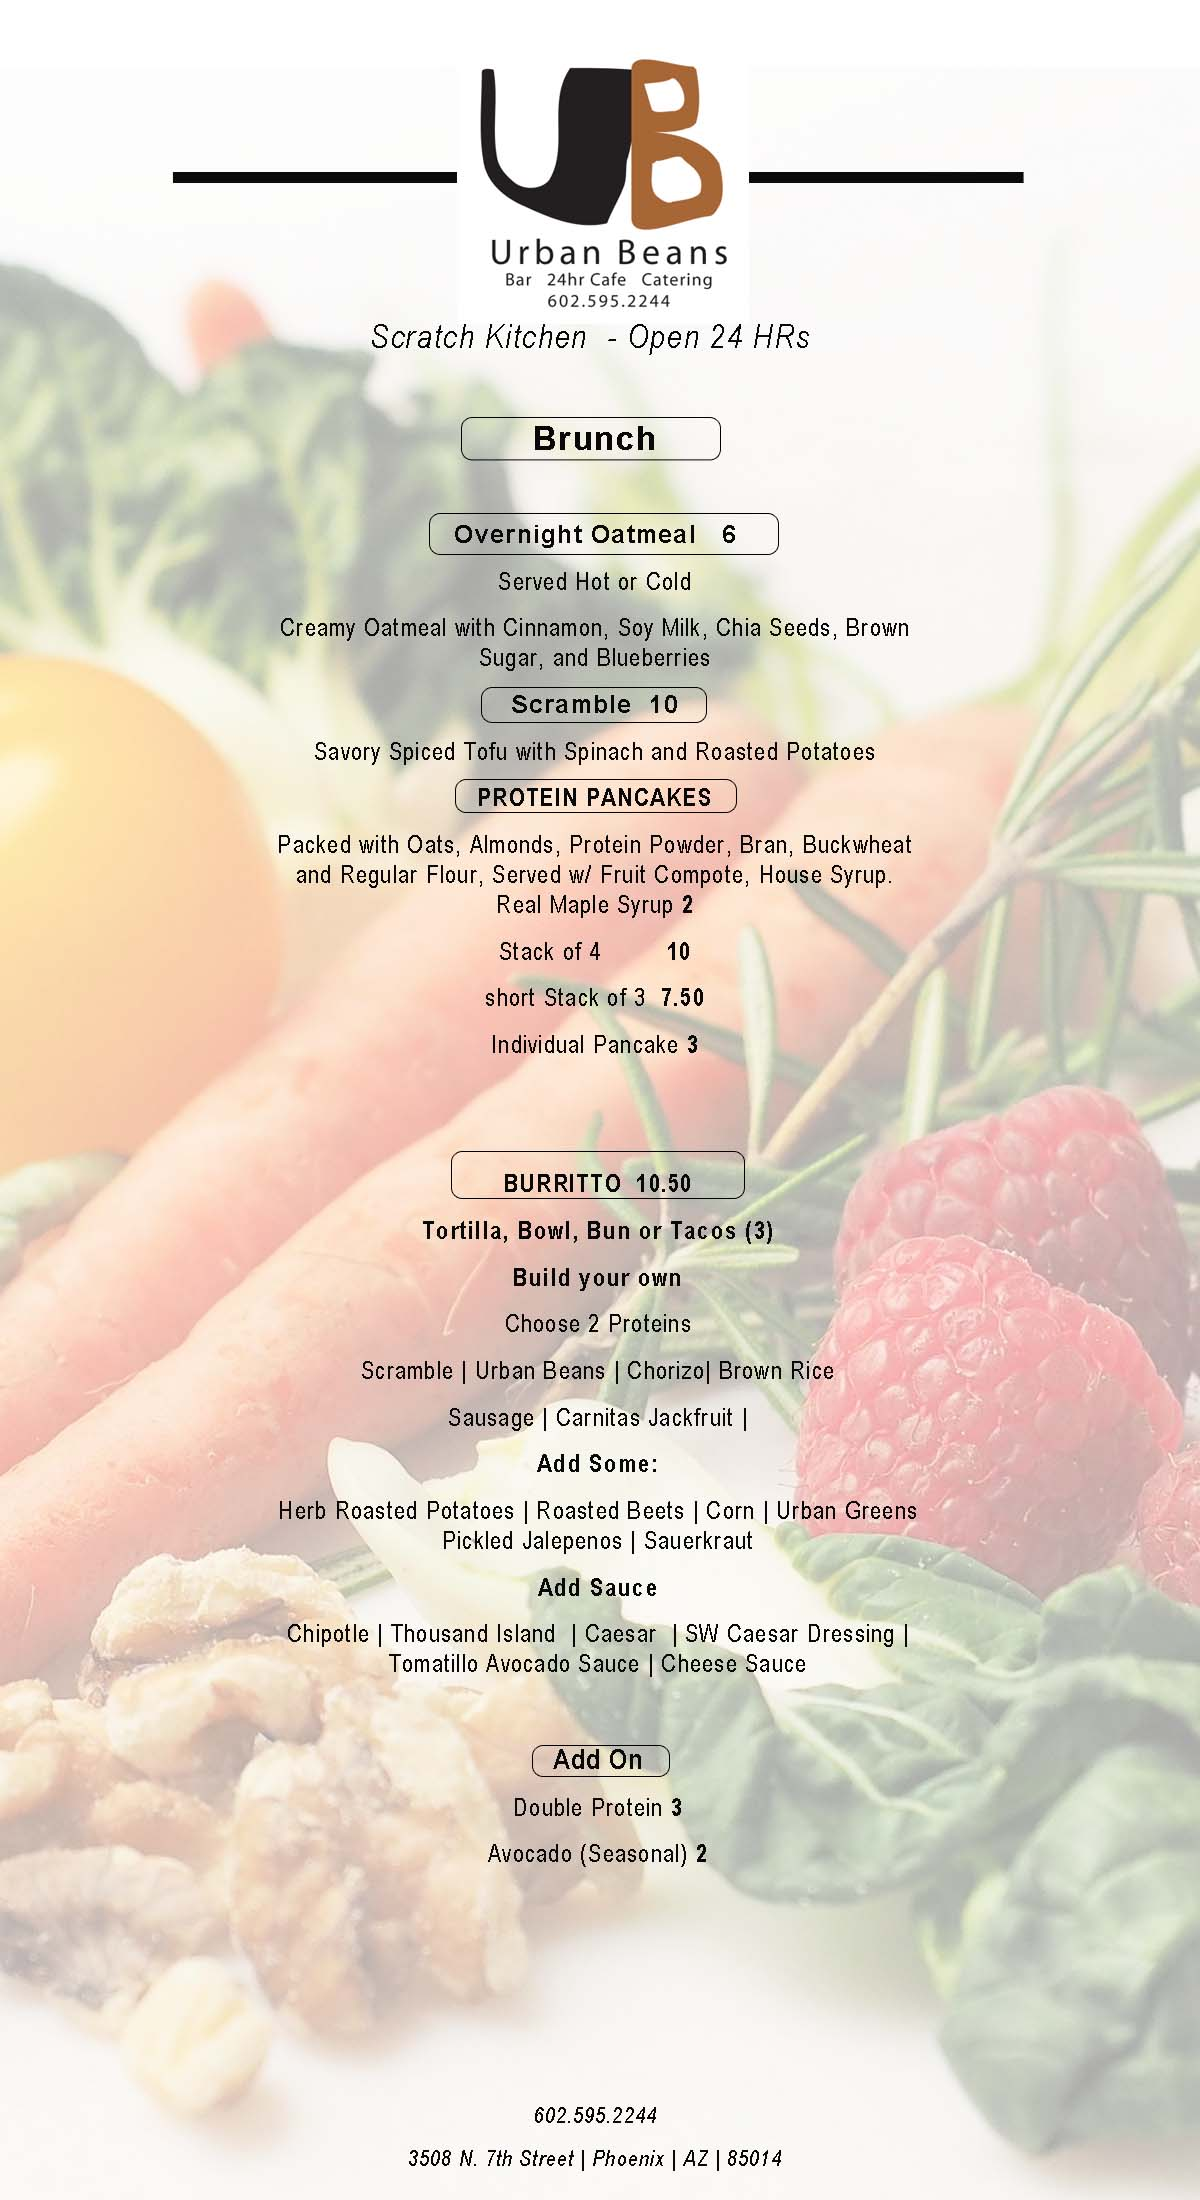 Urban Beans Brunch Menu